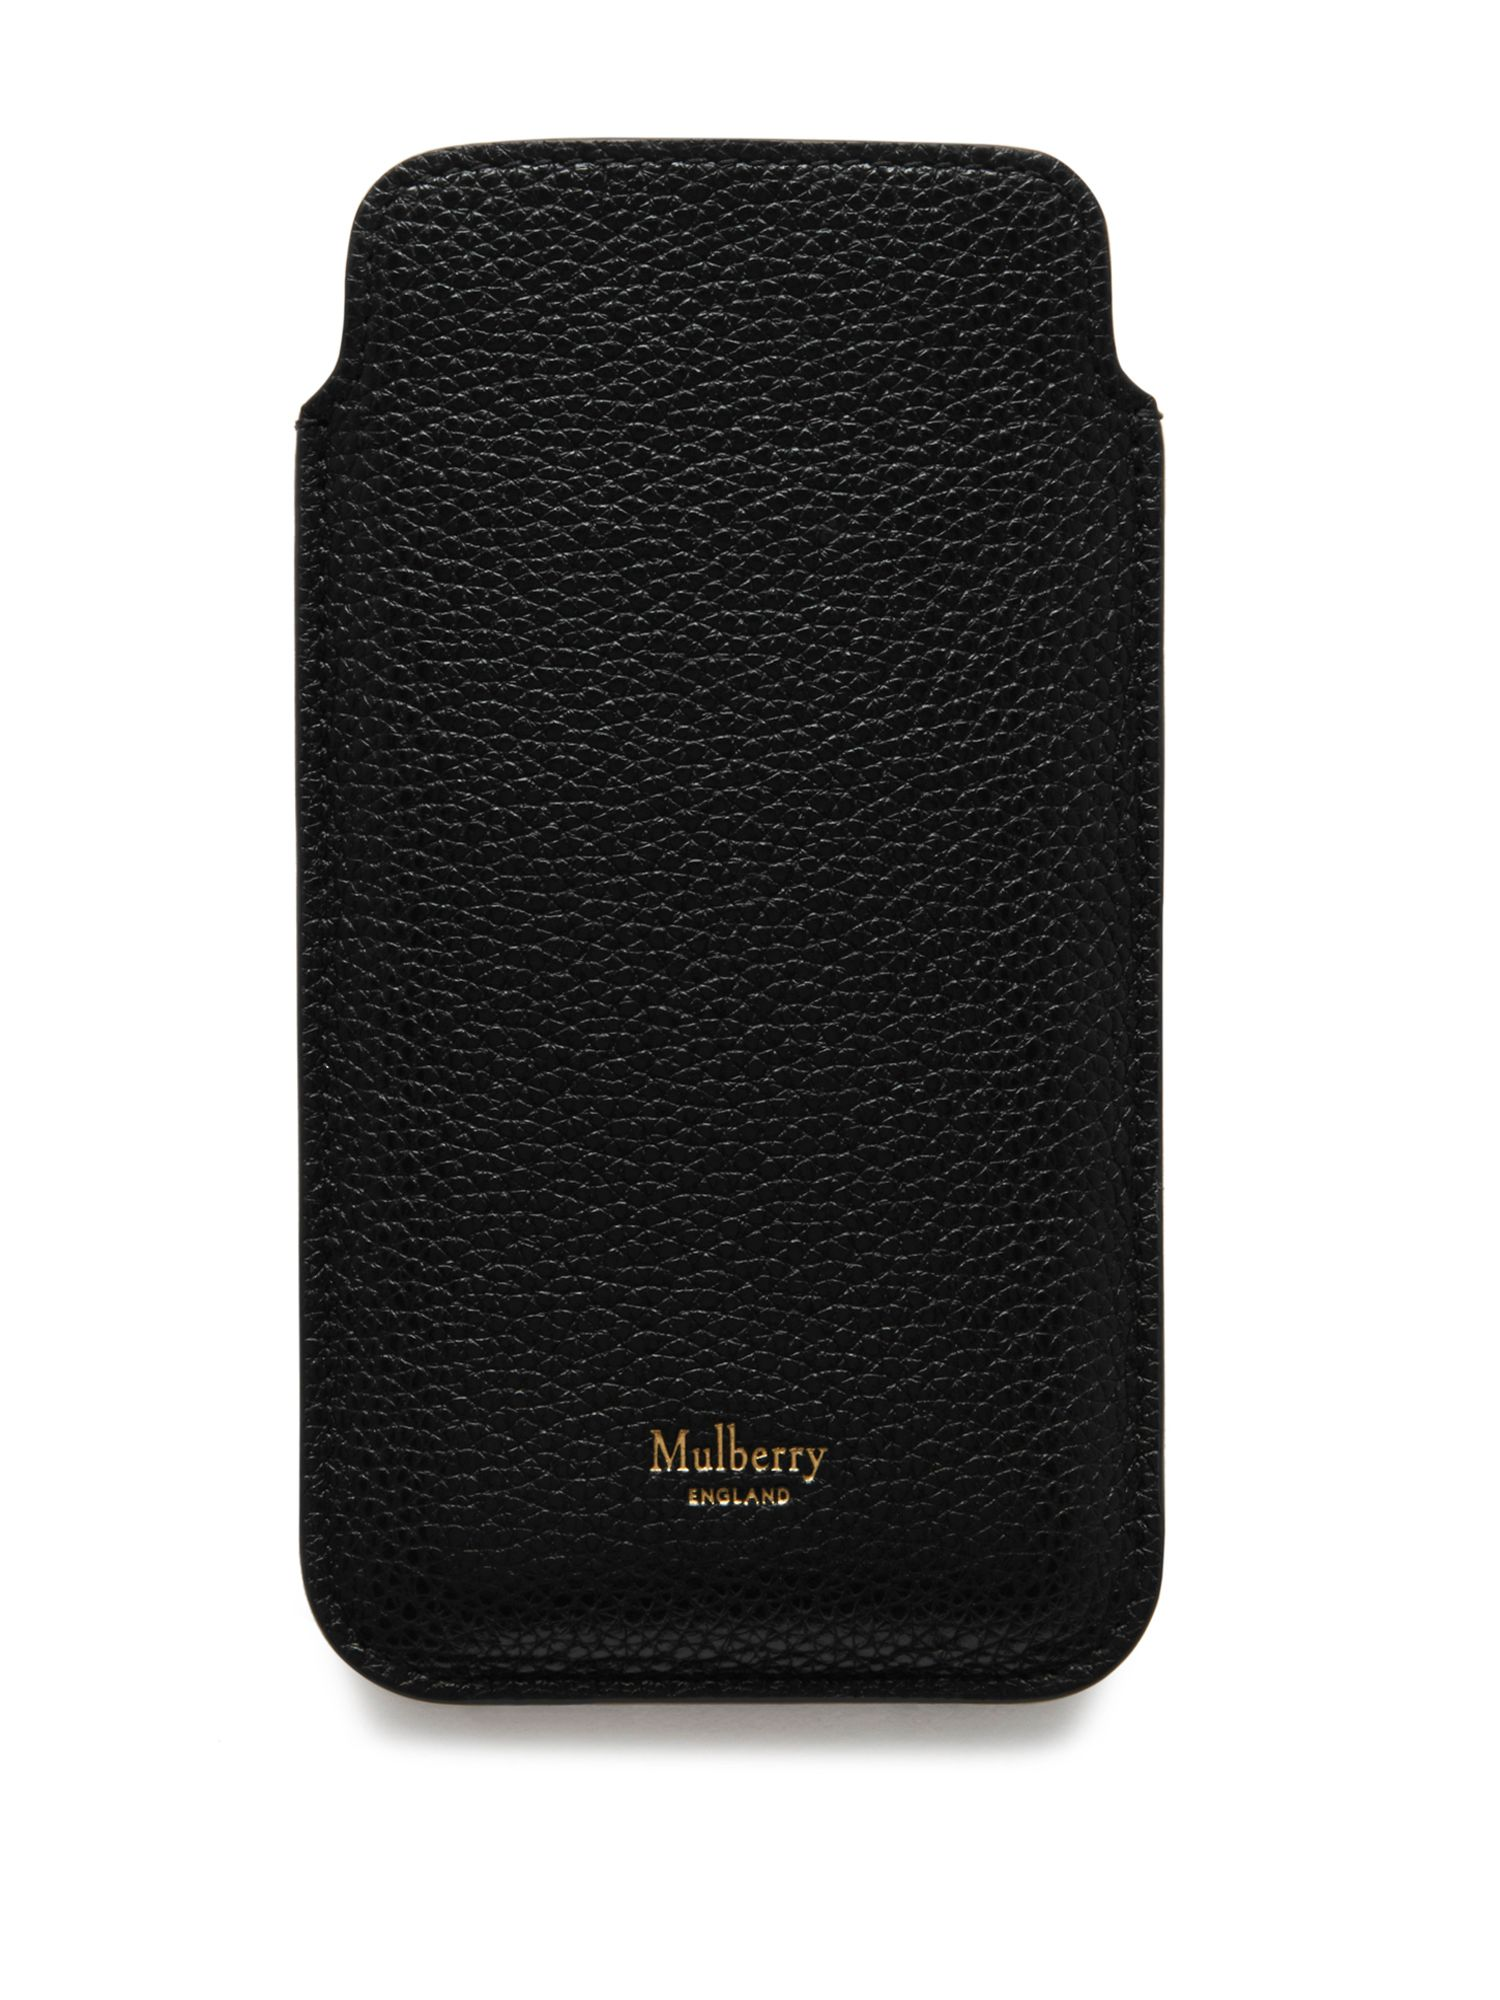 Iphone 6/7 Cover by Mulberry